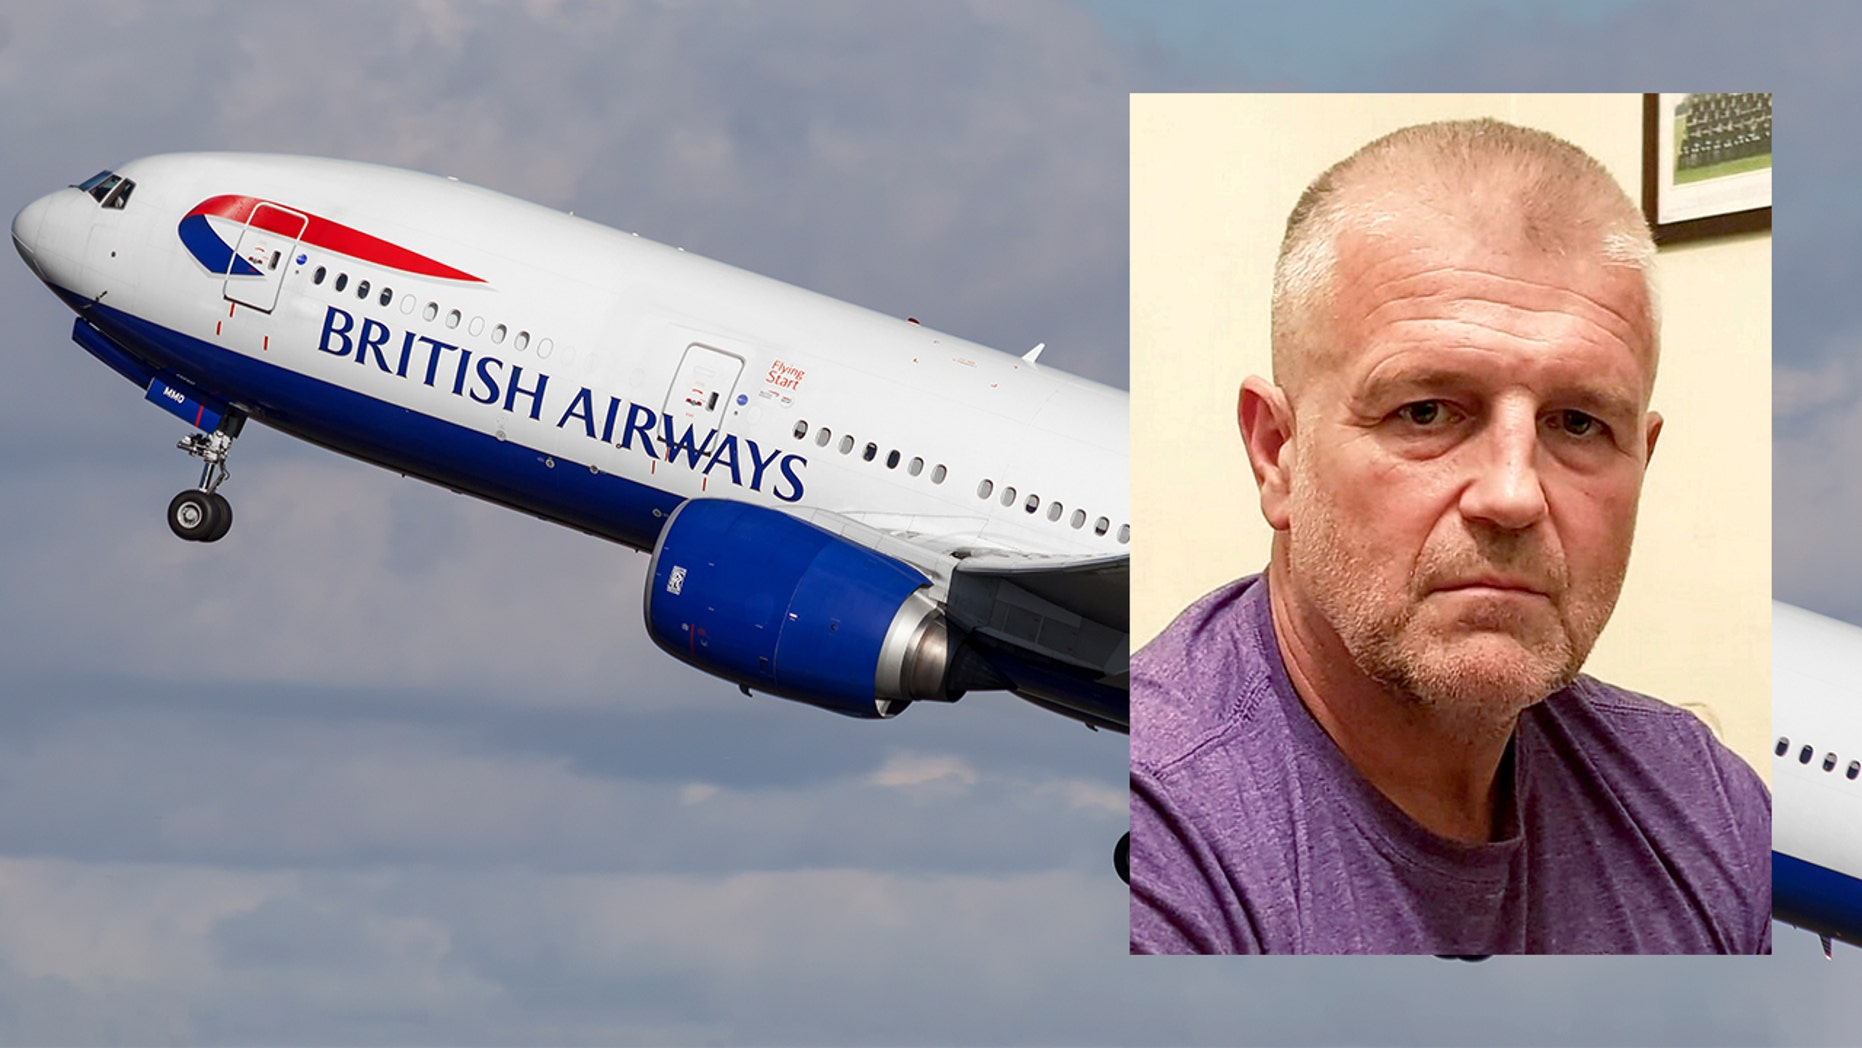 Andy Vicary, from Gloucester, England, was forced to move seats away from his wife for the long-haul flight.